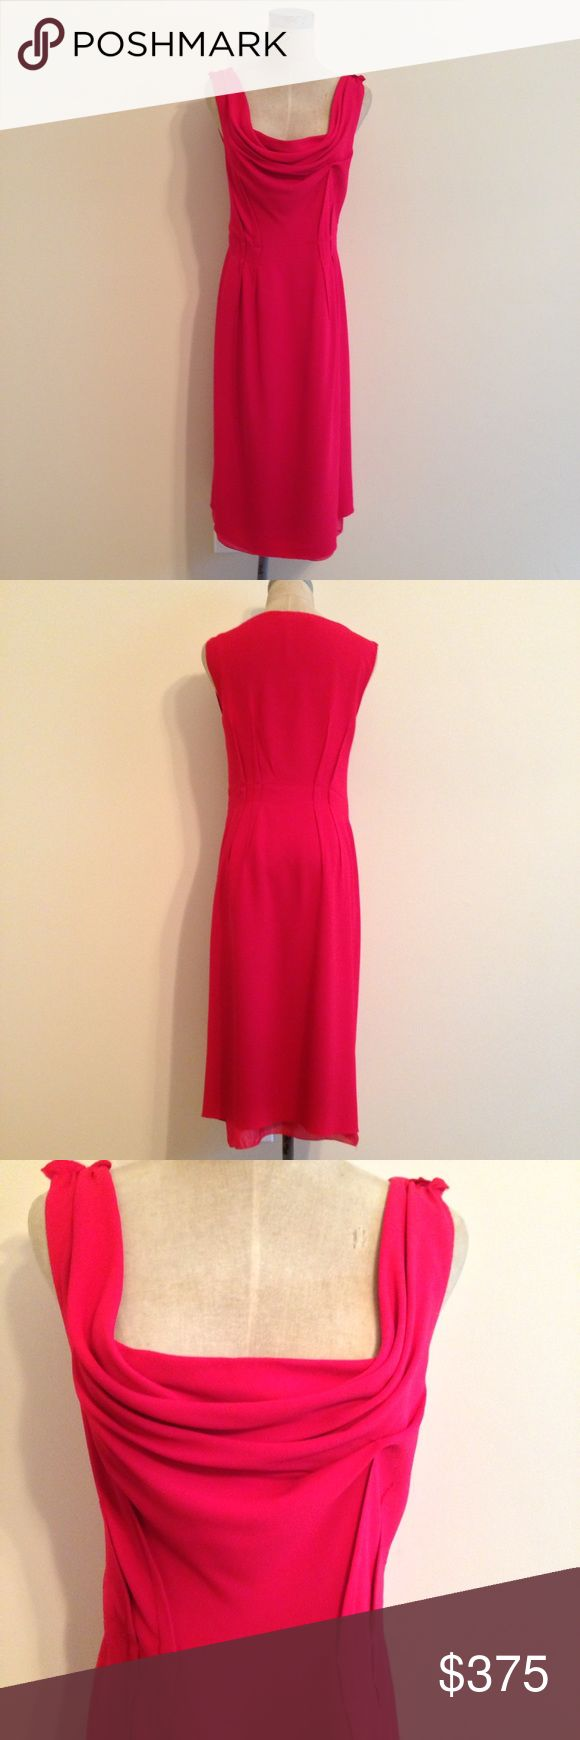 Size 2 red dress eye